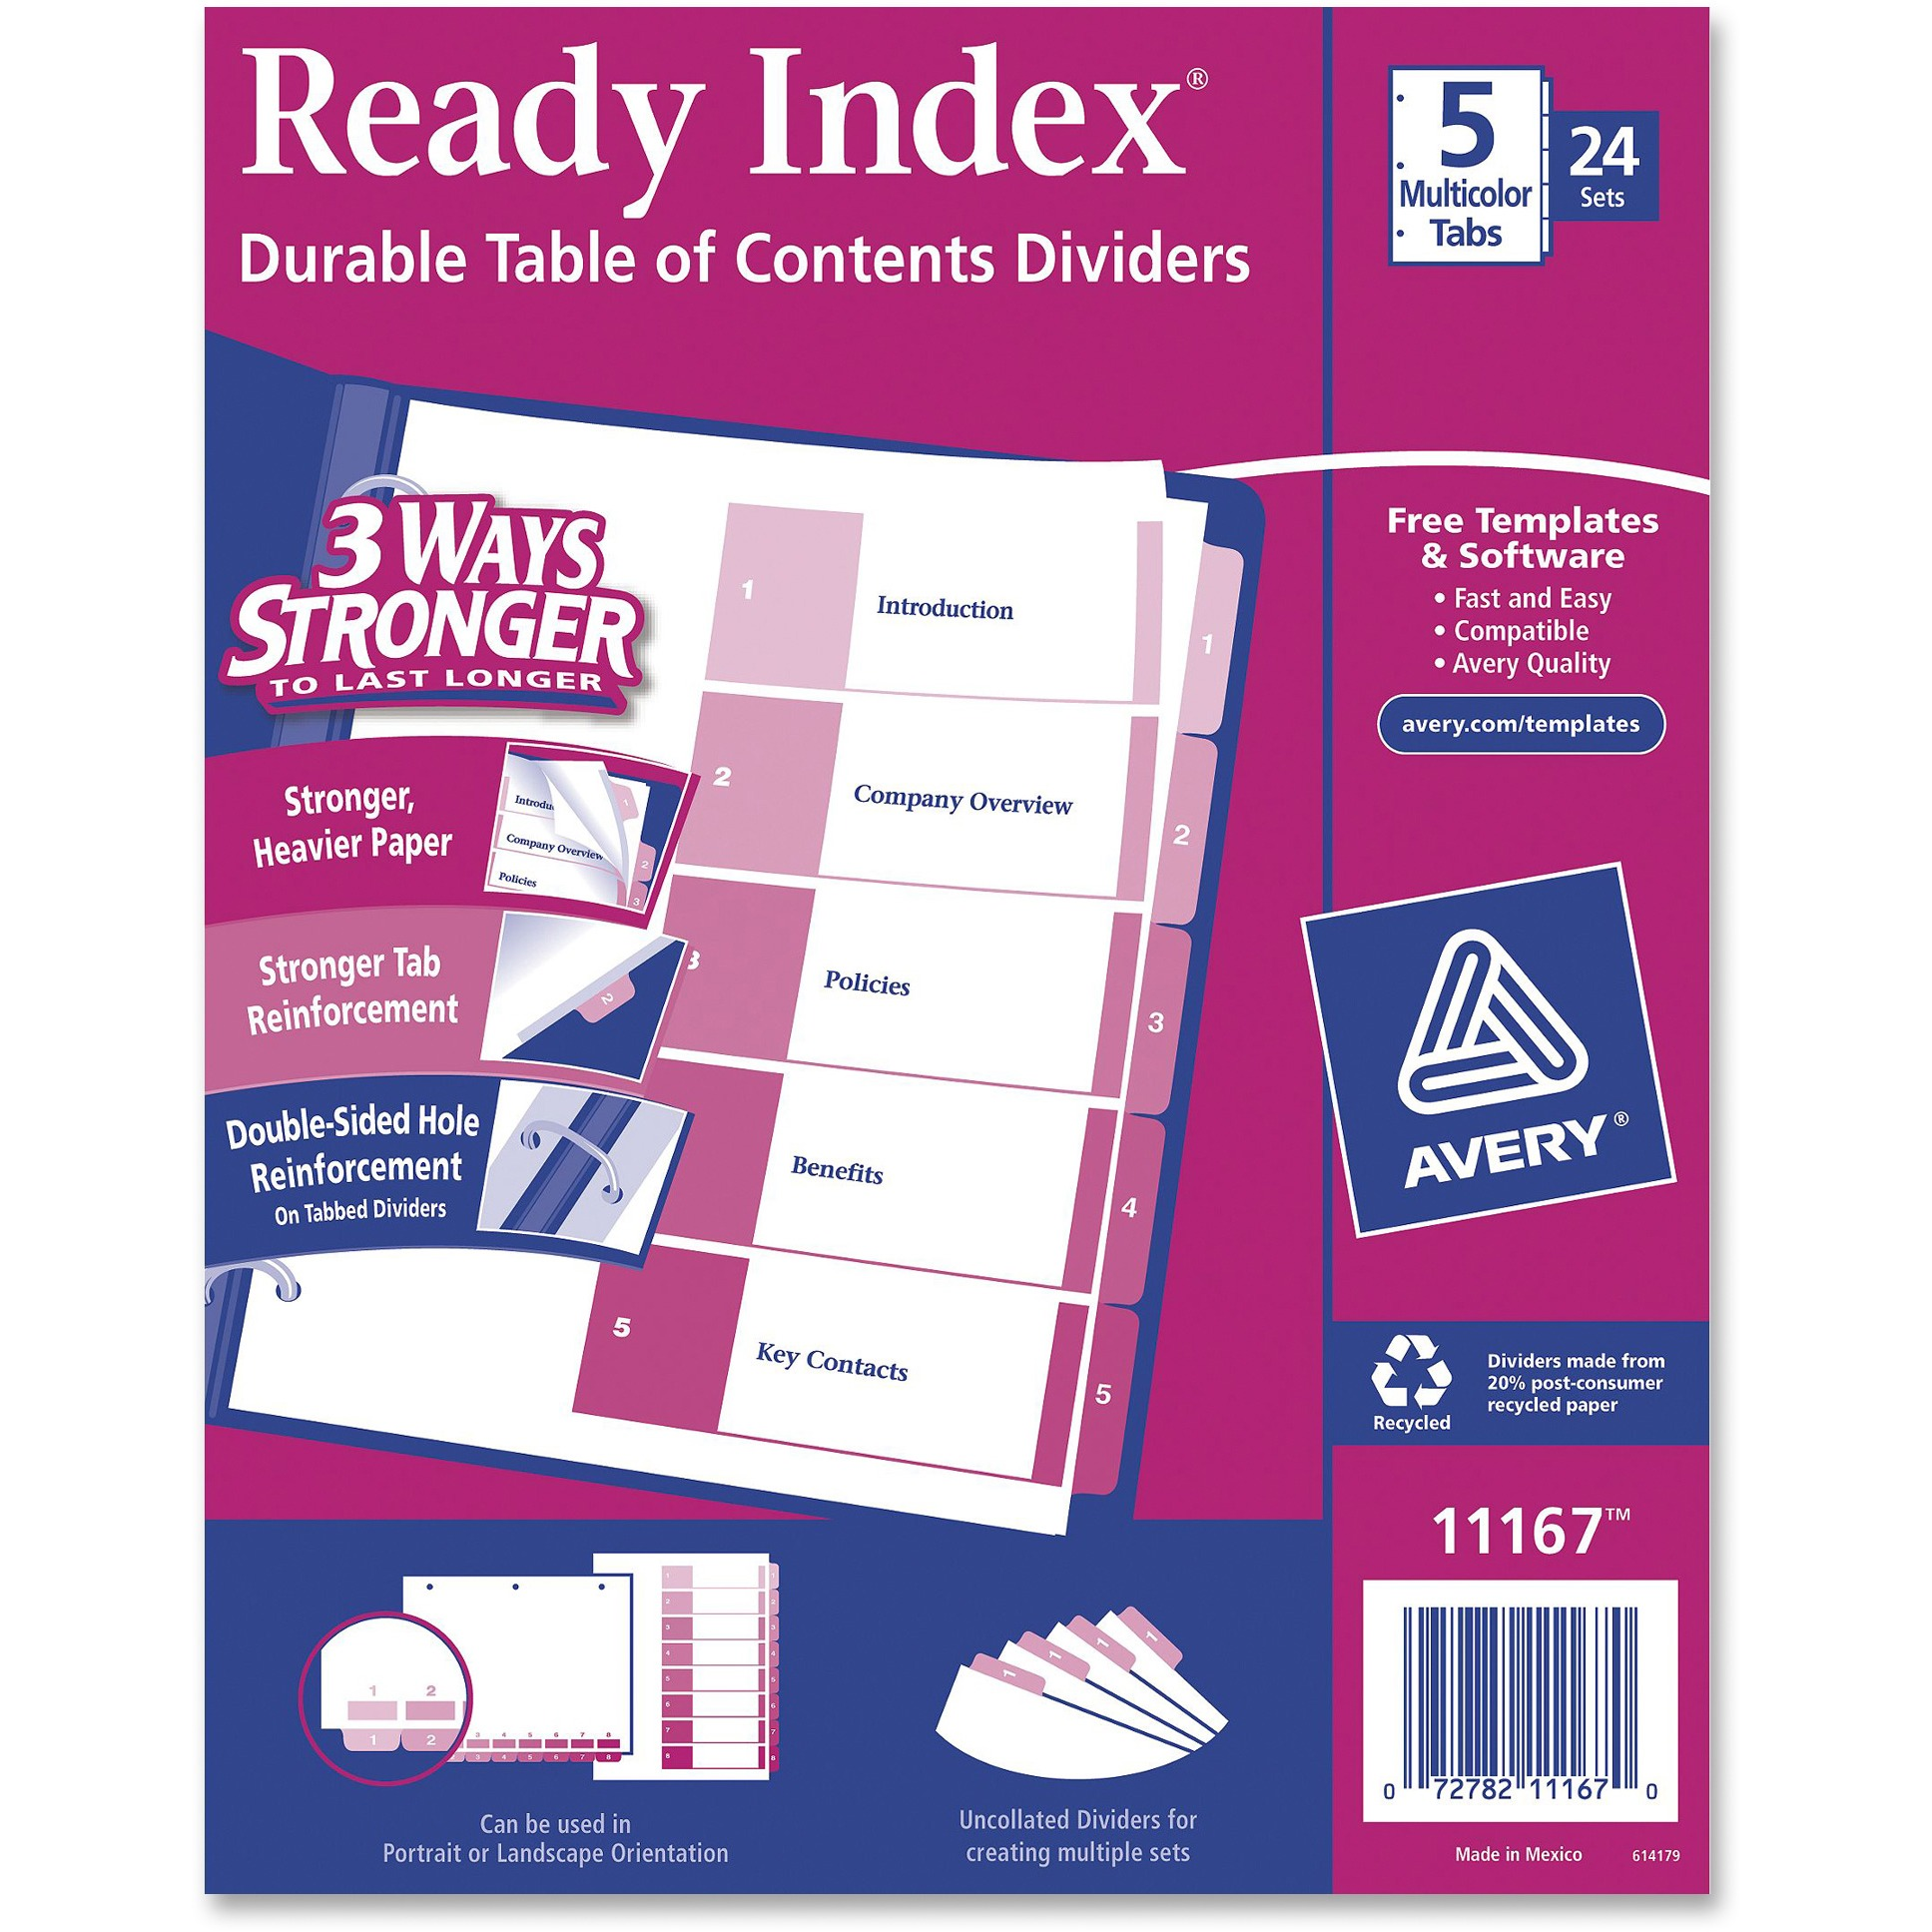 Avery Ready Index Table of Contents Dividers, 5 Tab Divider, 24 Count (11167) by Avery